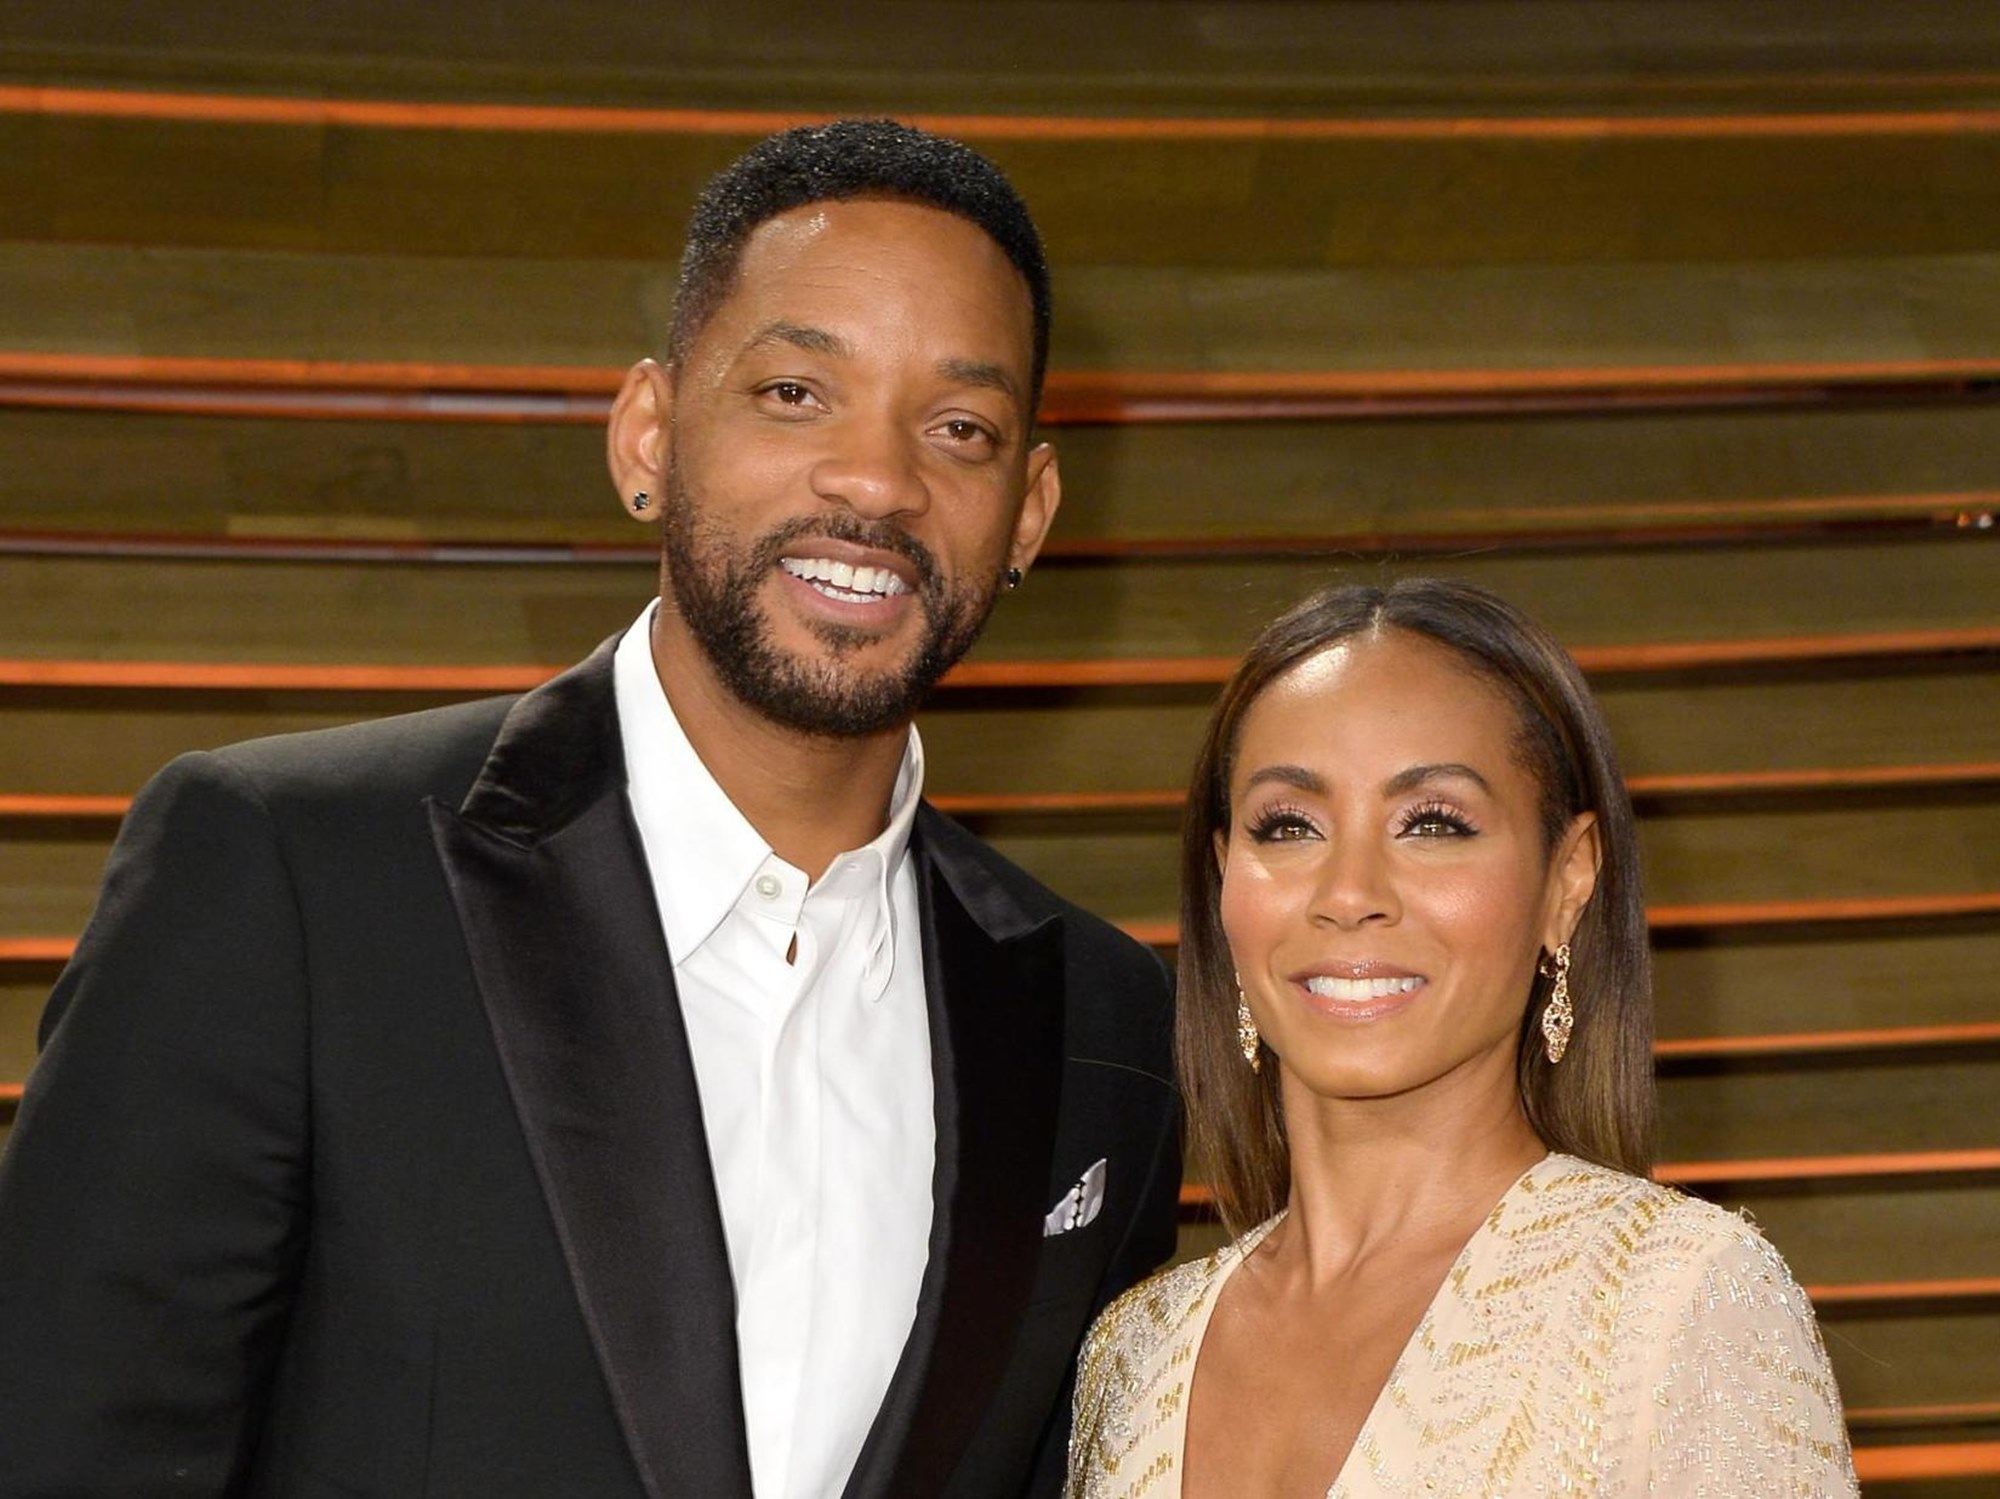 Jada Pinkett Smith and Will Smith's Marriage Drama: Explained